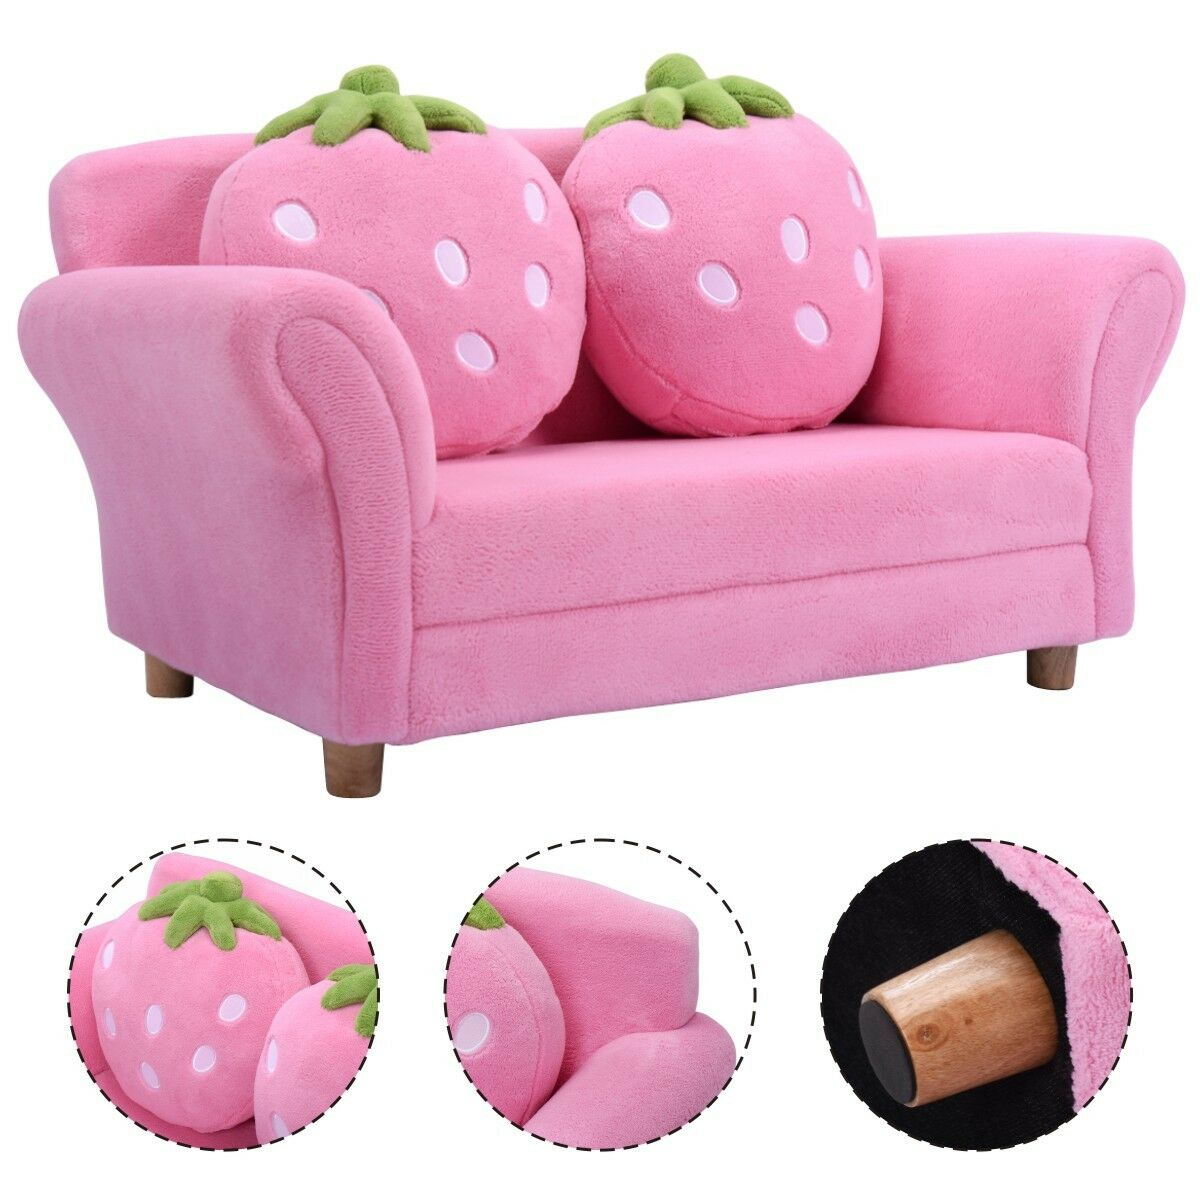 One Kid Sofa With 2 Pillows